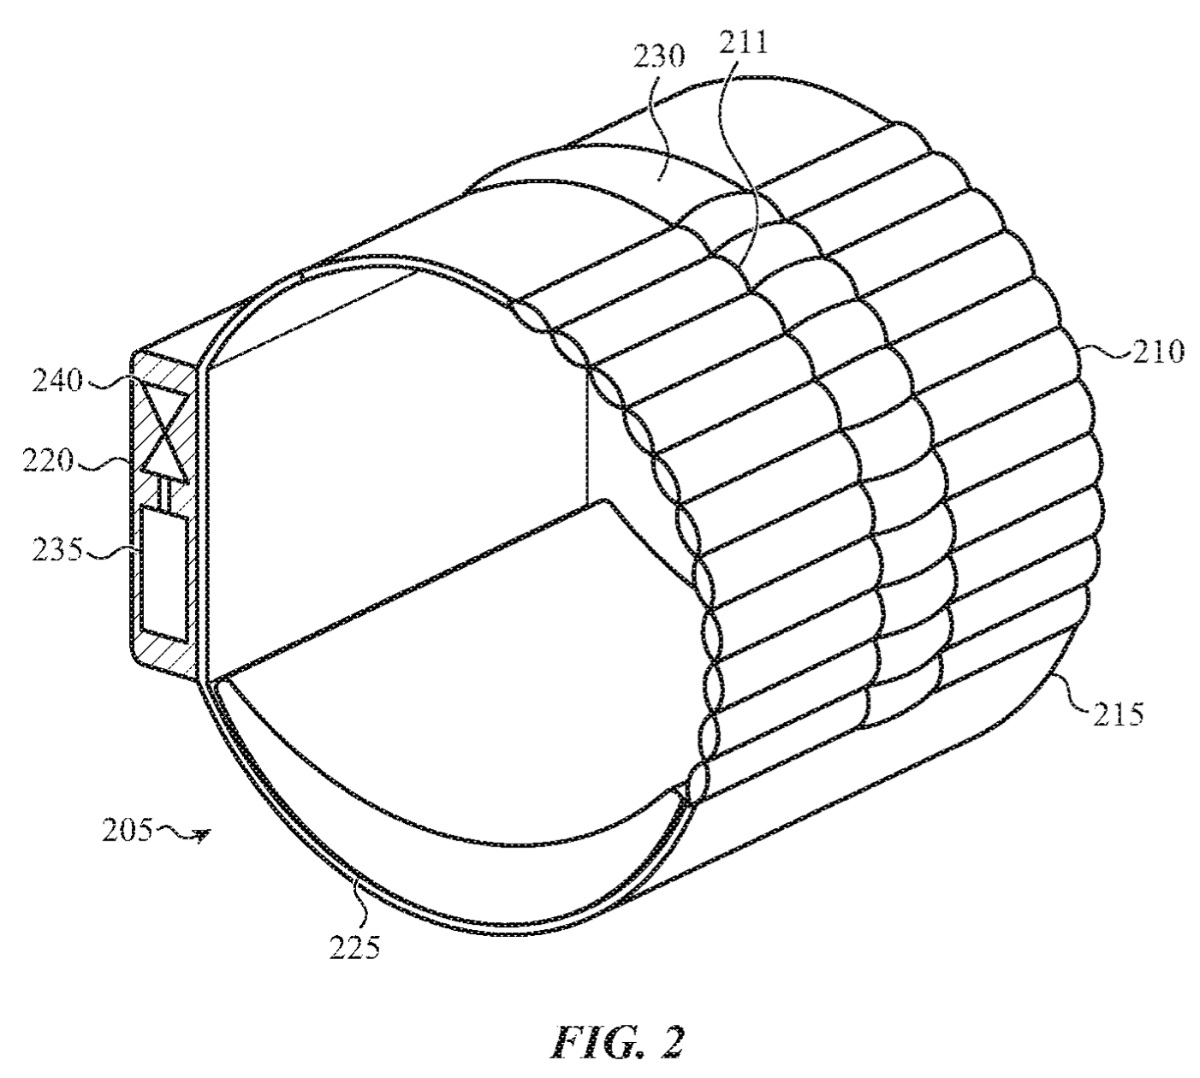 Future Apple Watch band could double as a stretchable blood pressure cuff